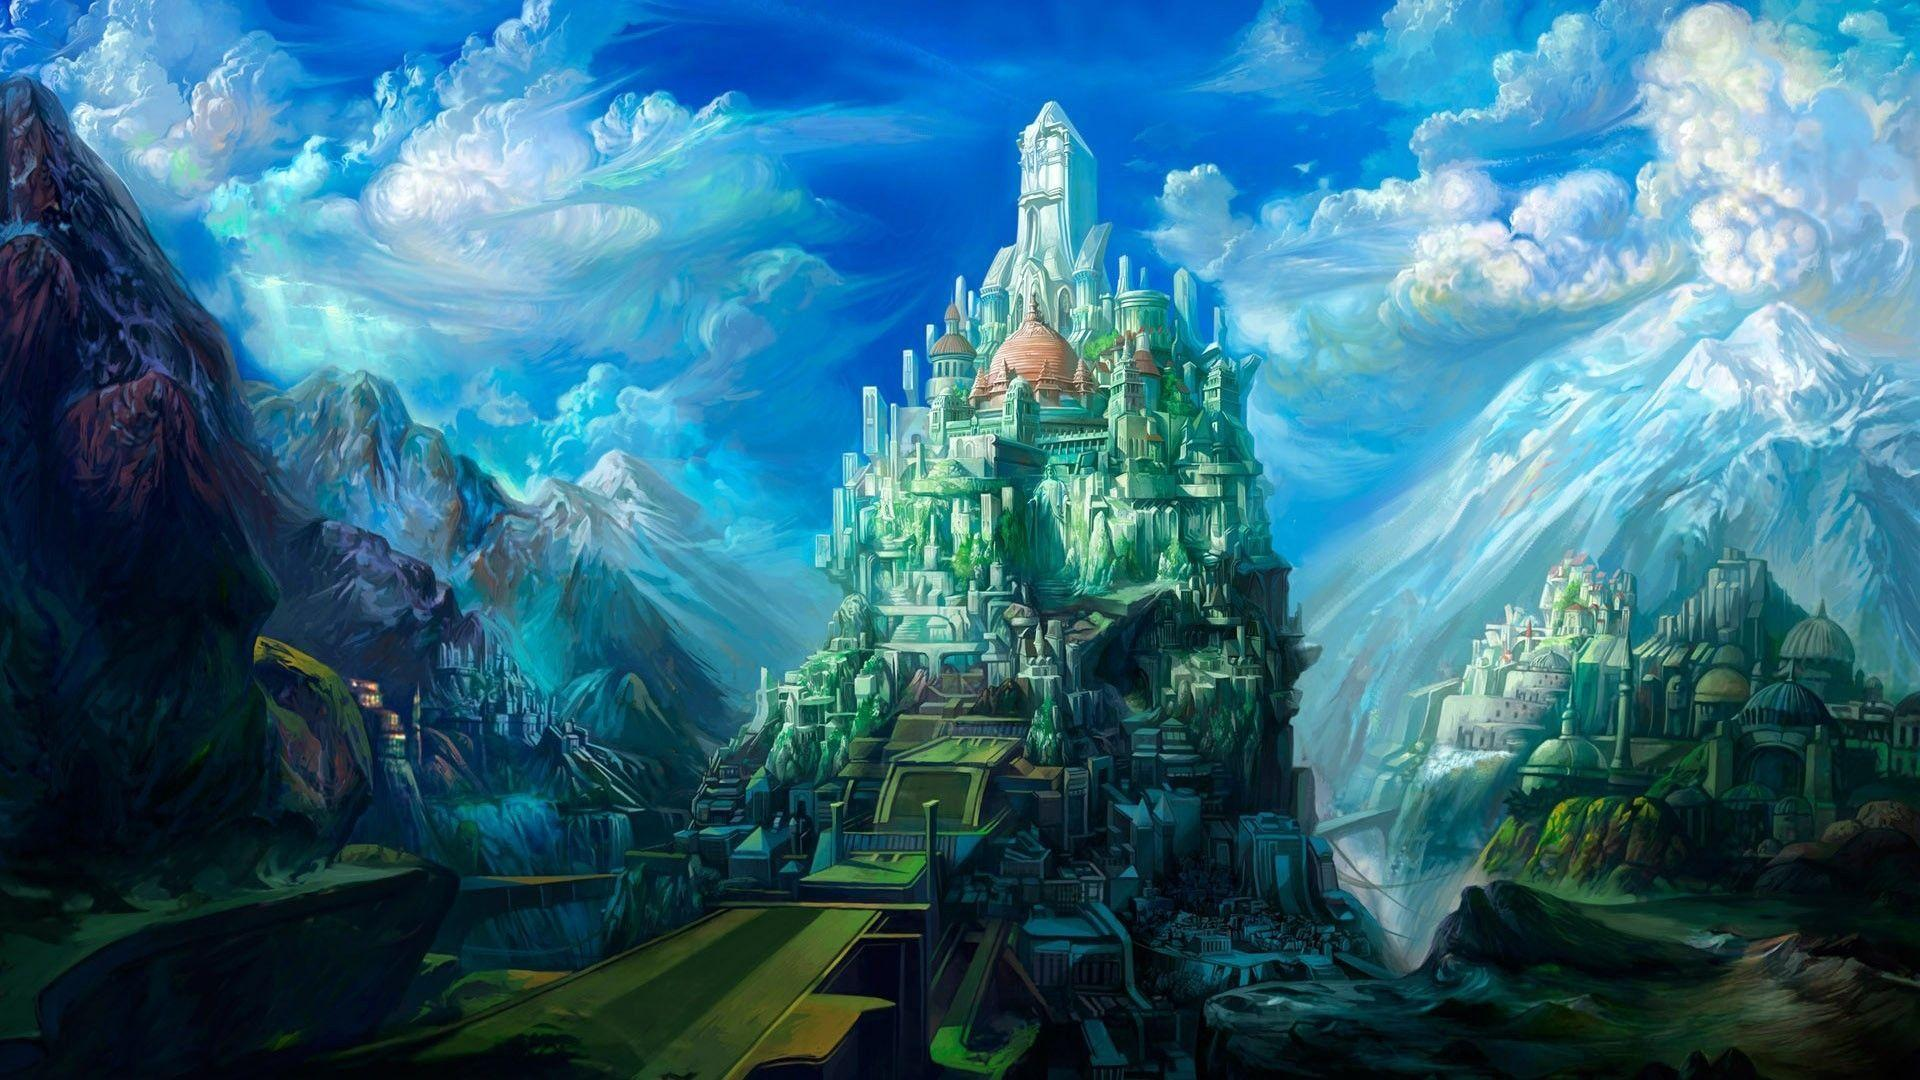 fantasyland : Desktop and mobile wallpapers : Wallippo